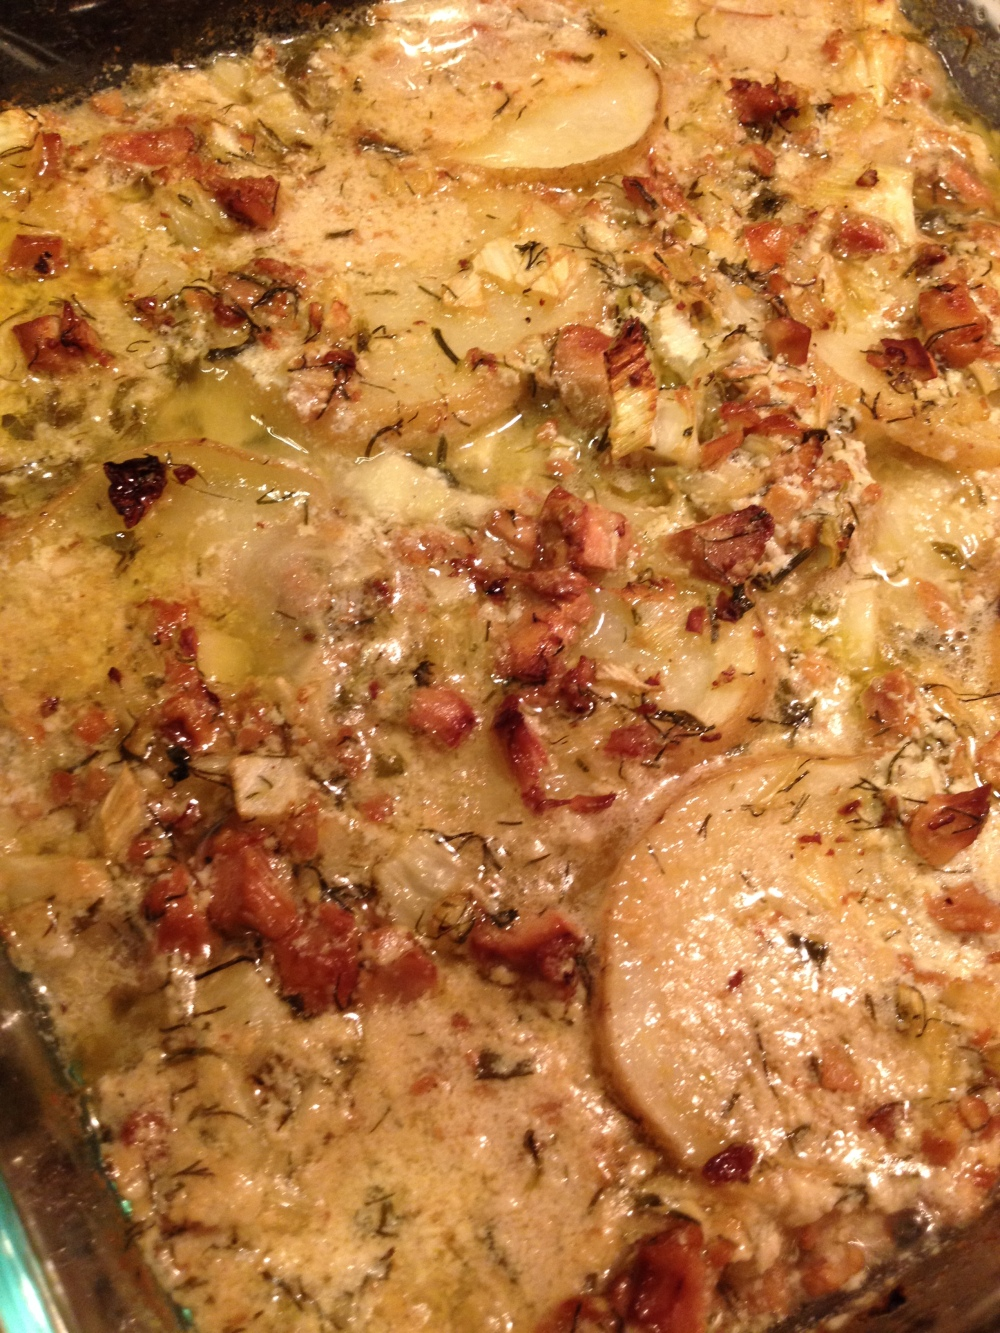 Scalloped Potatoes with Chanterelle Cream Sauce